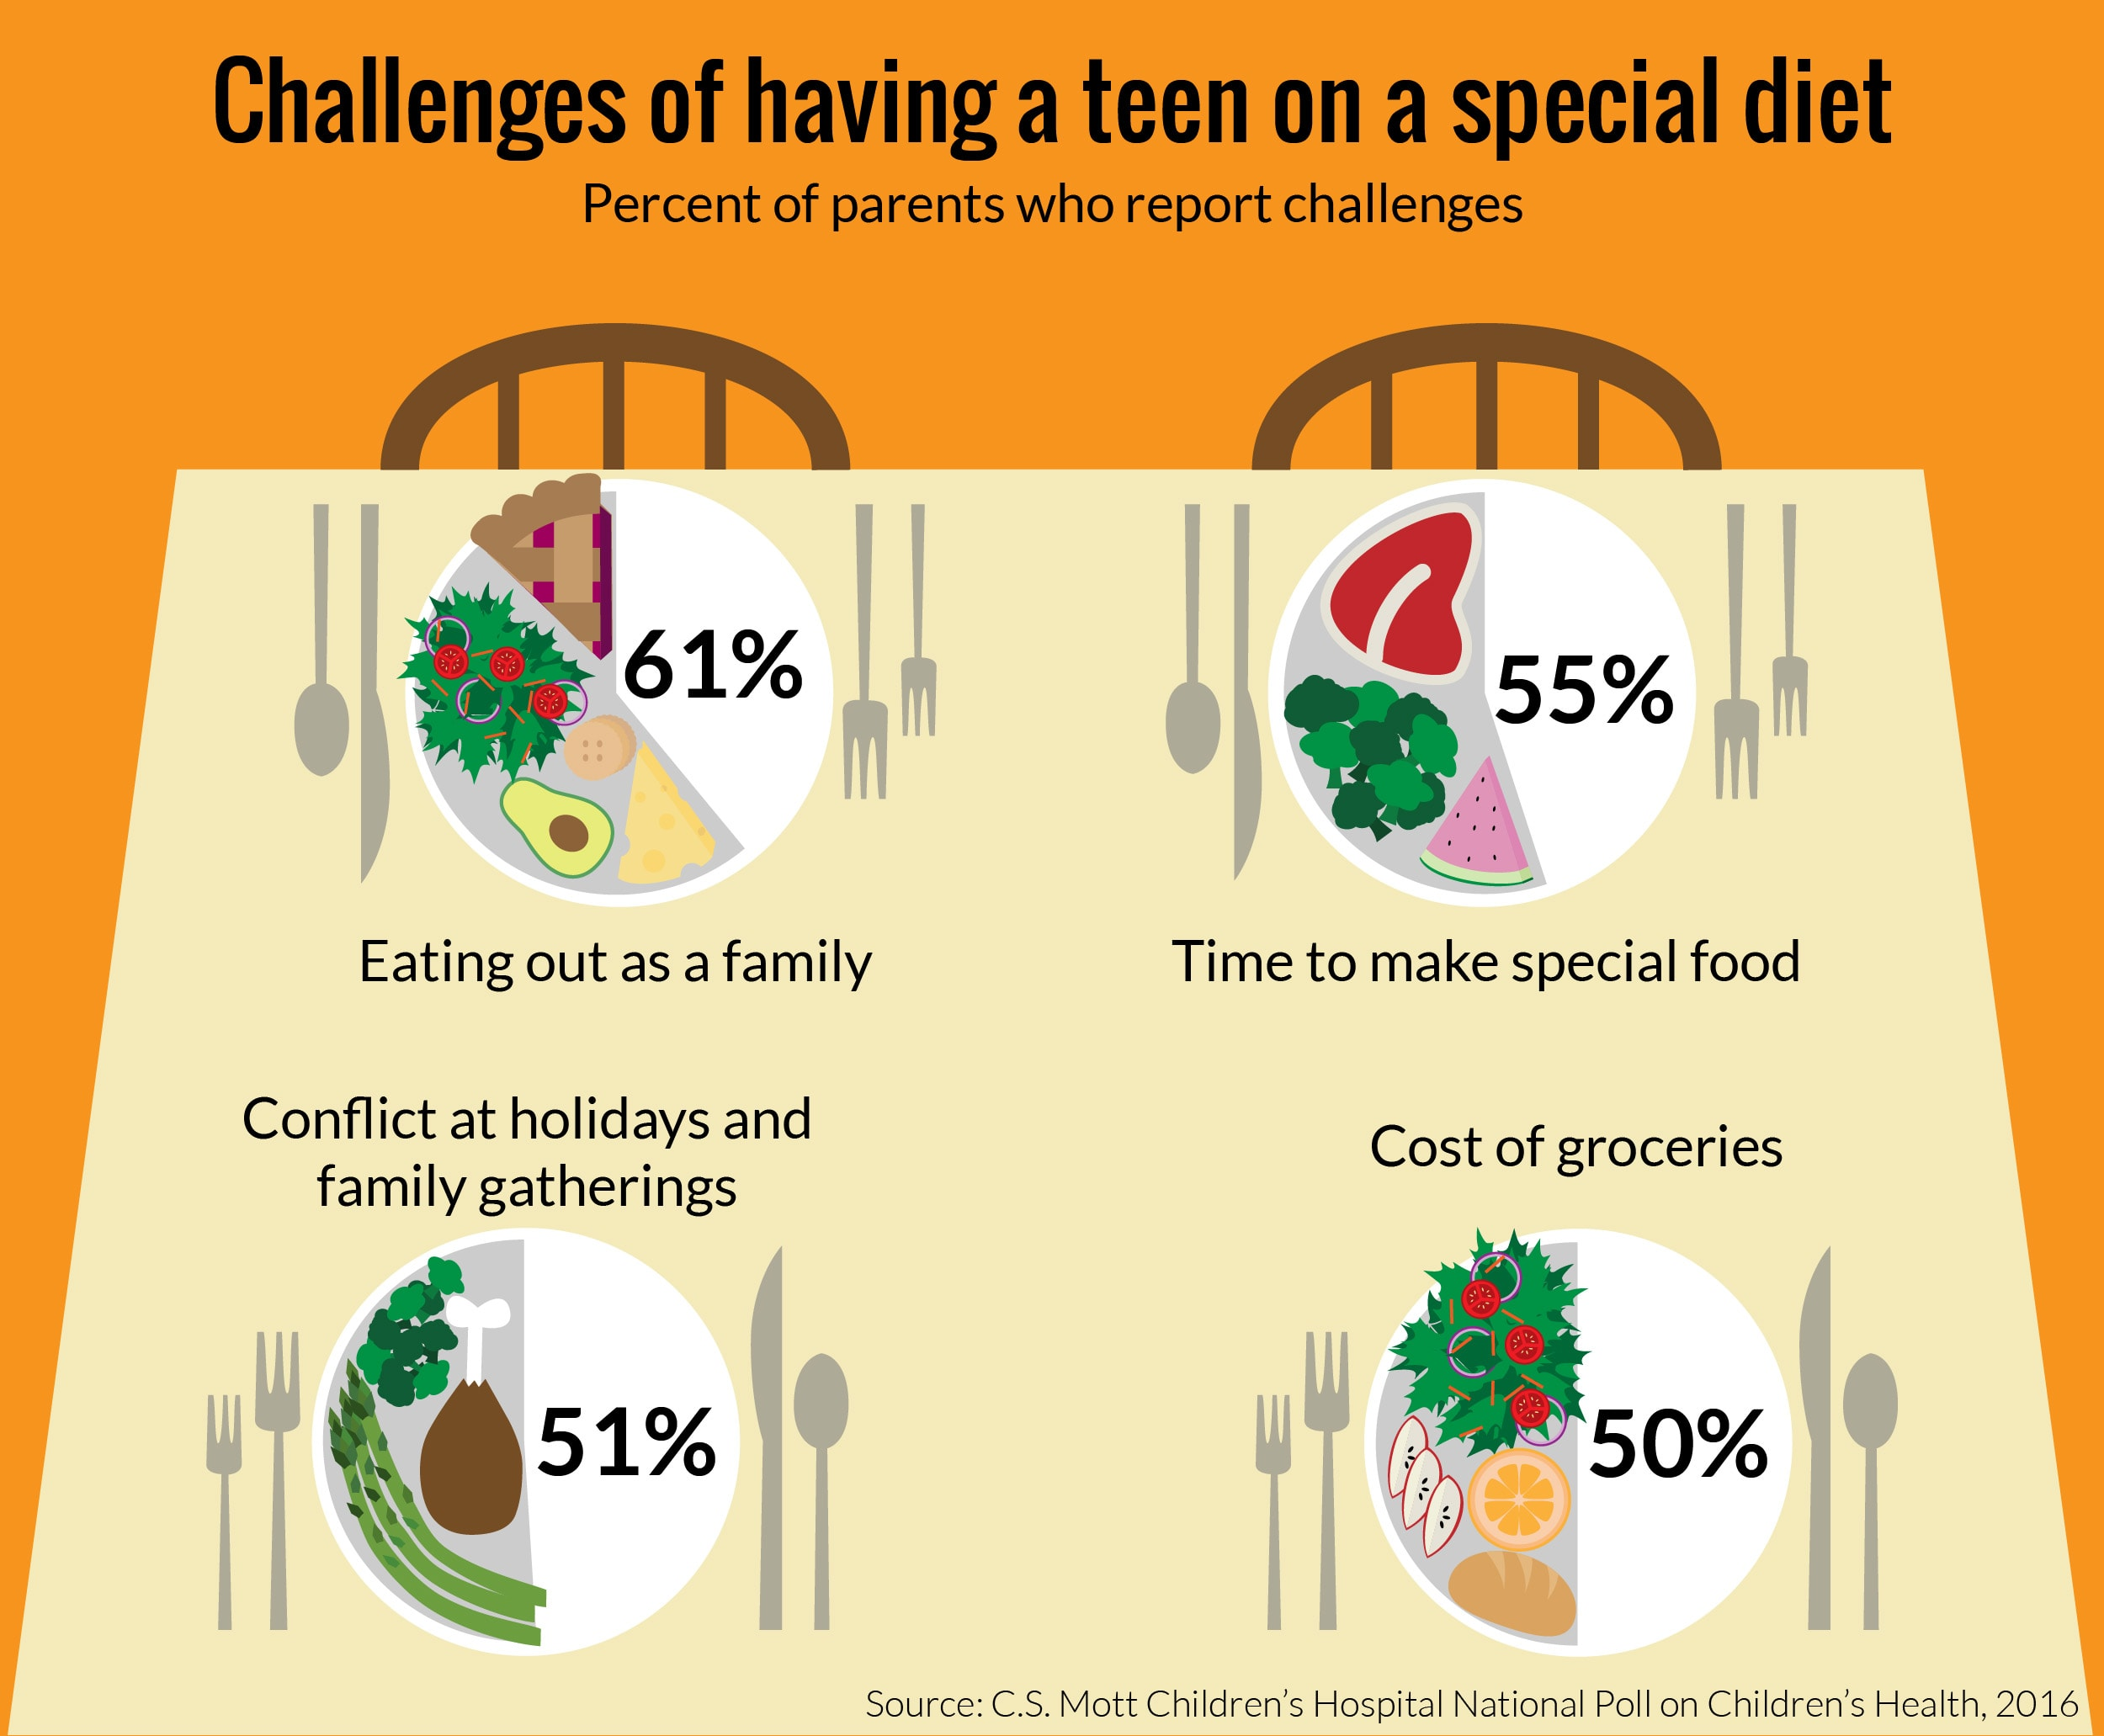 Infographic showing the challenges of teens on a special diet